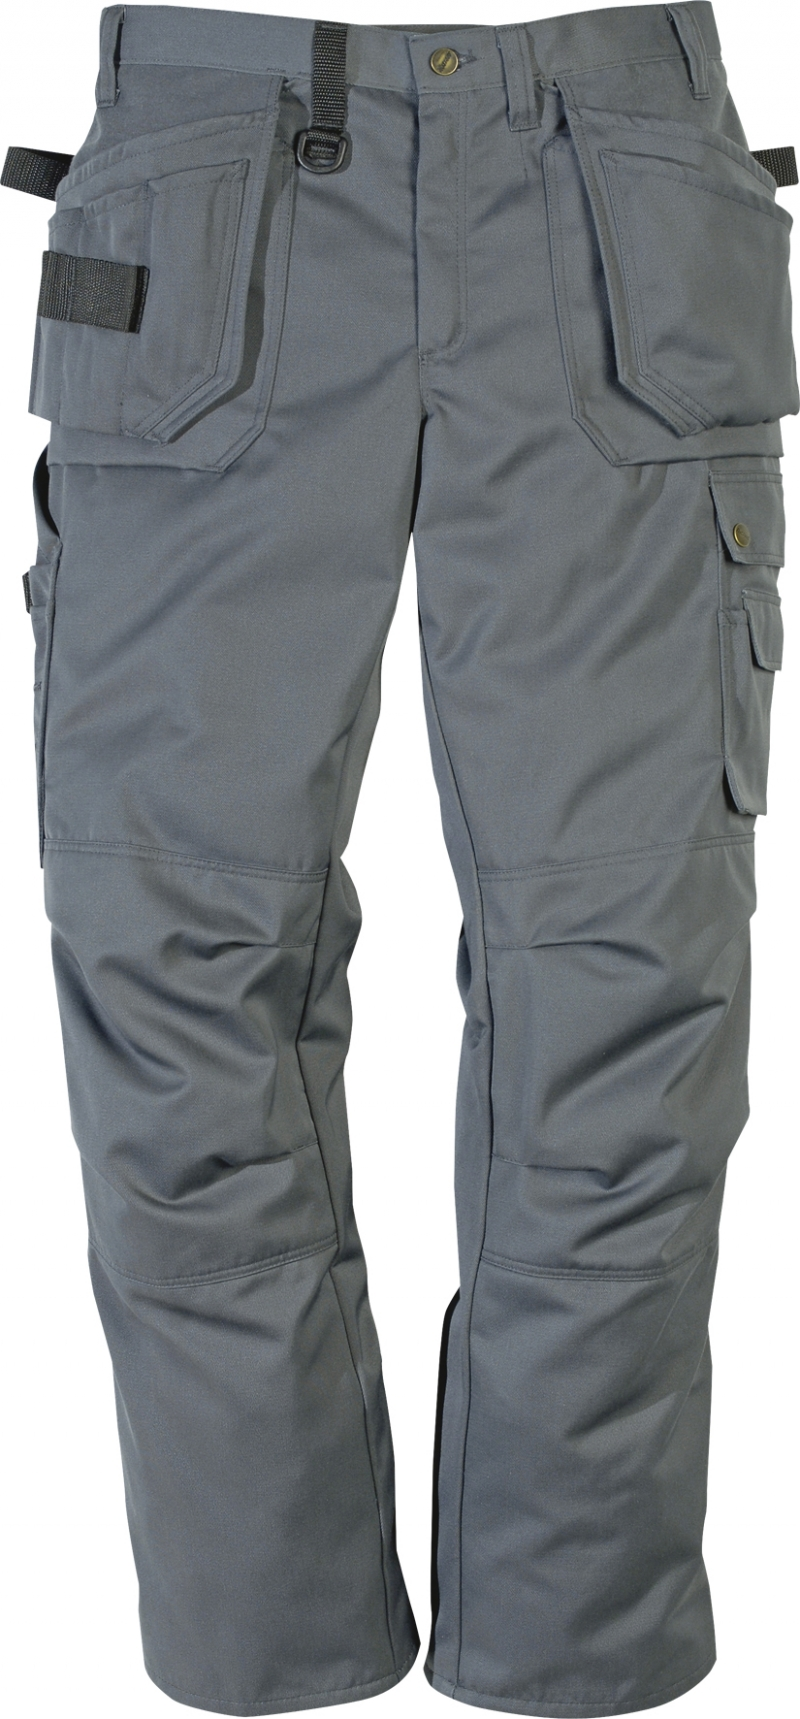 Bundhose INDUSTRY 300 khaki-schwarz Gr 56 Airsoft Funsport